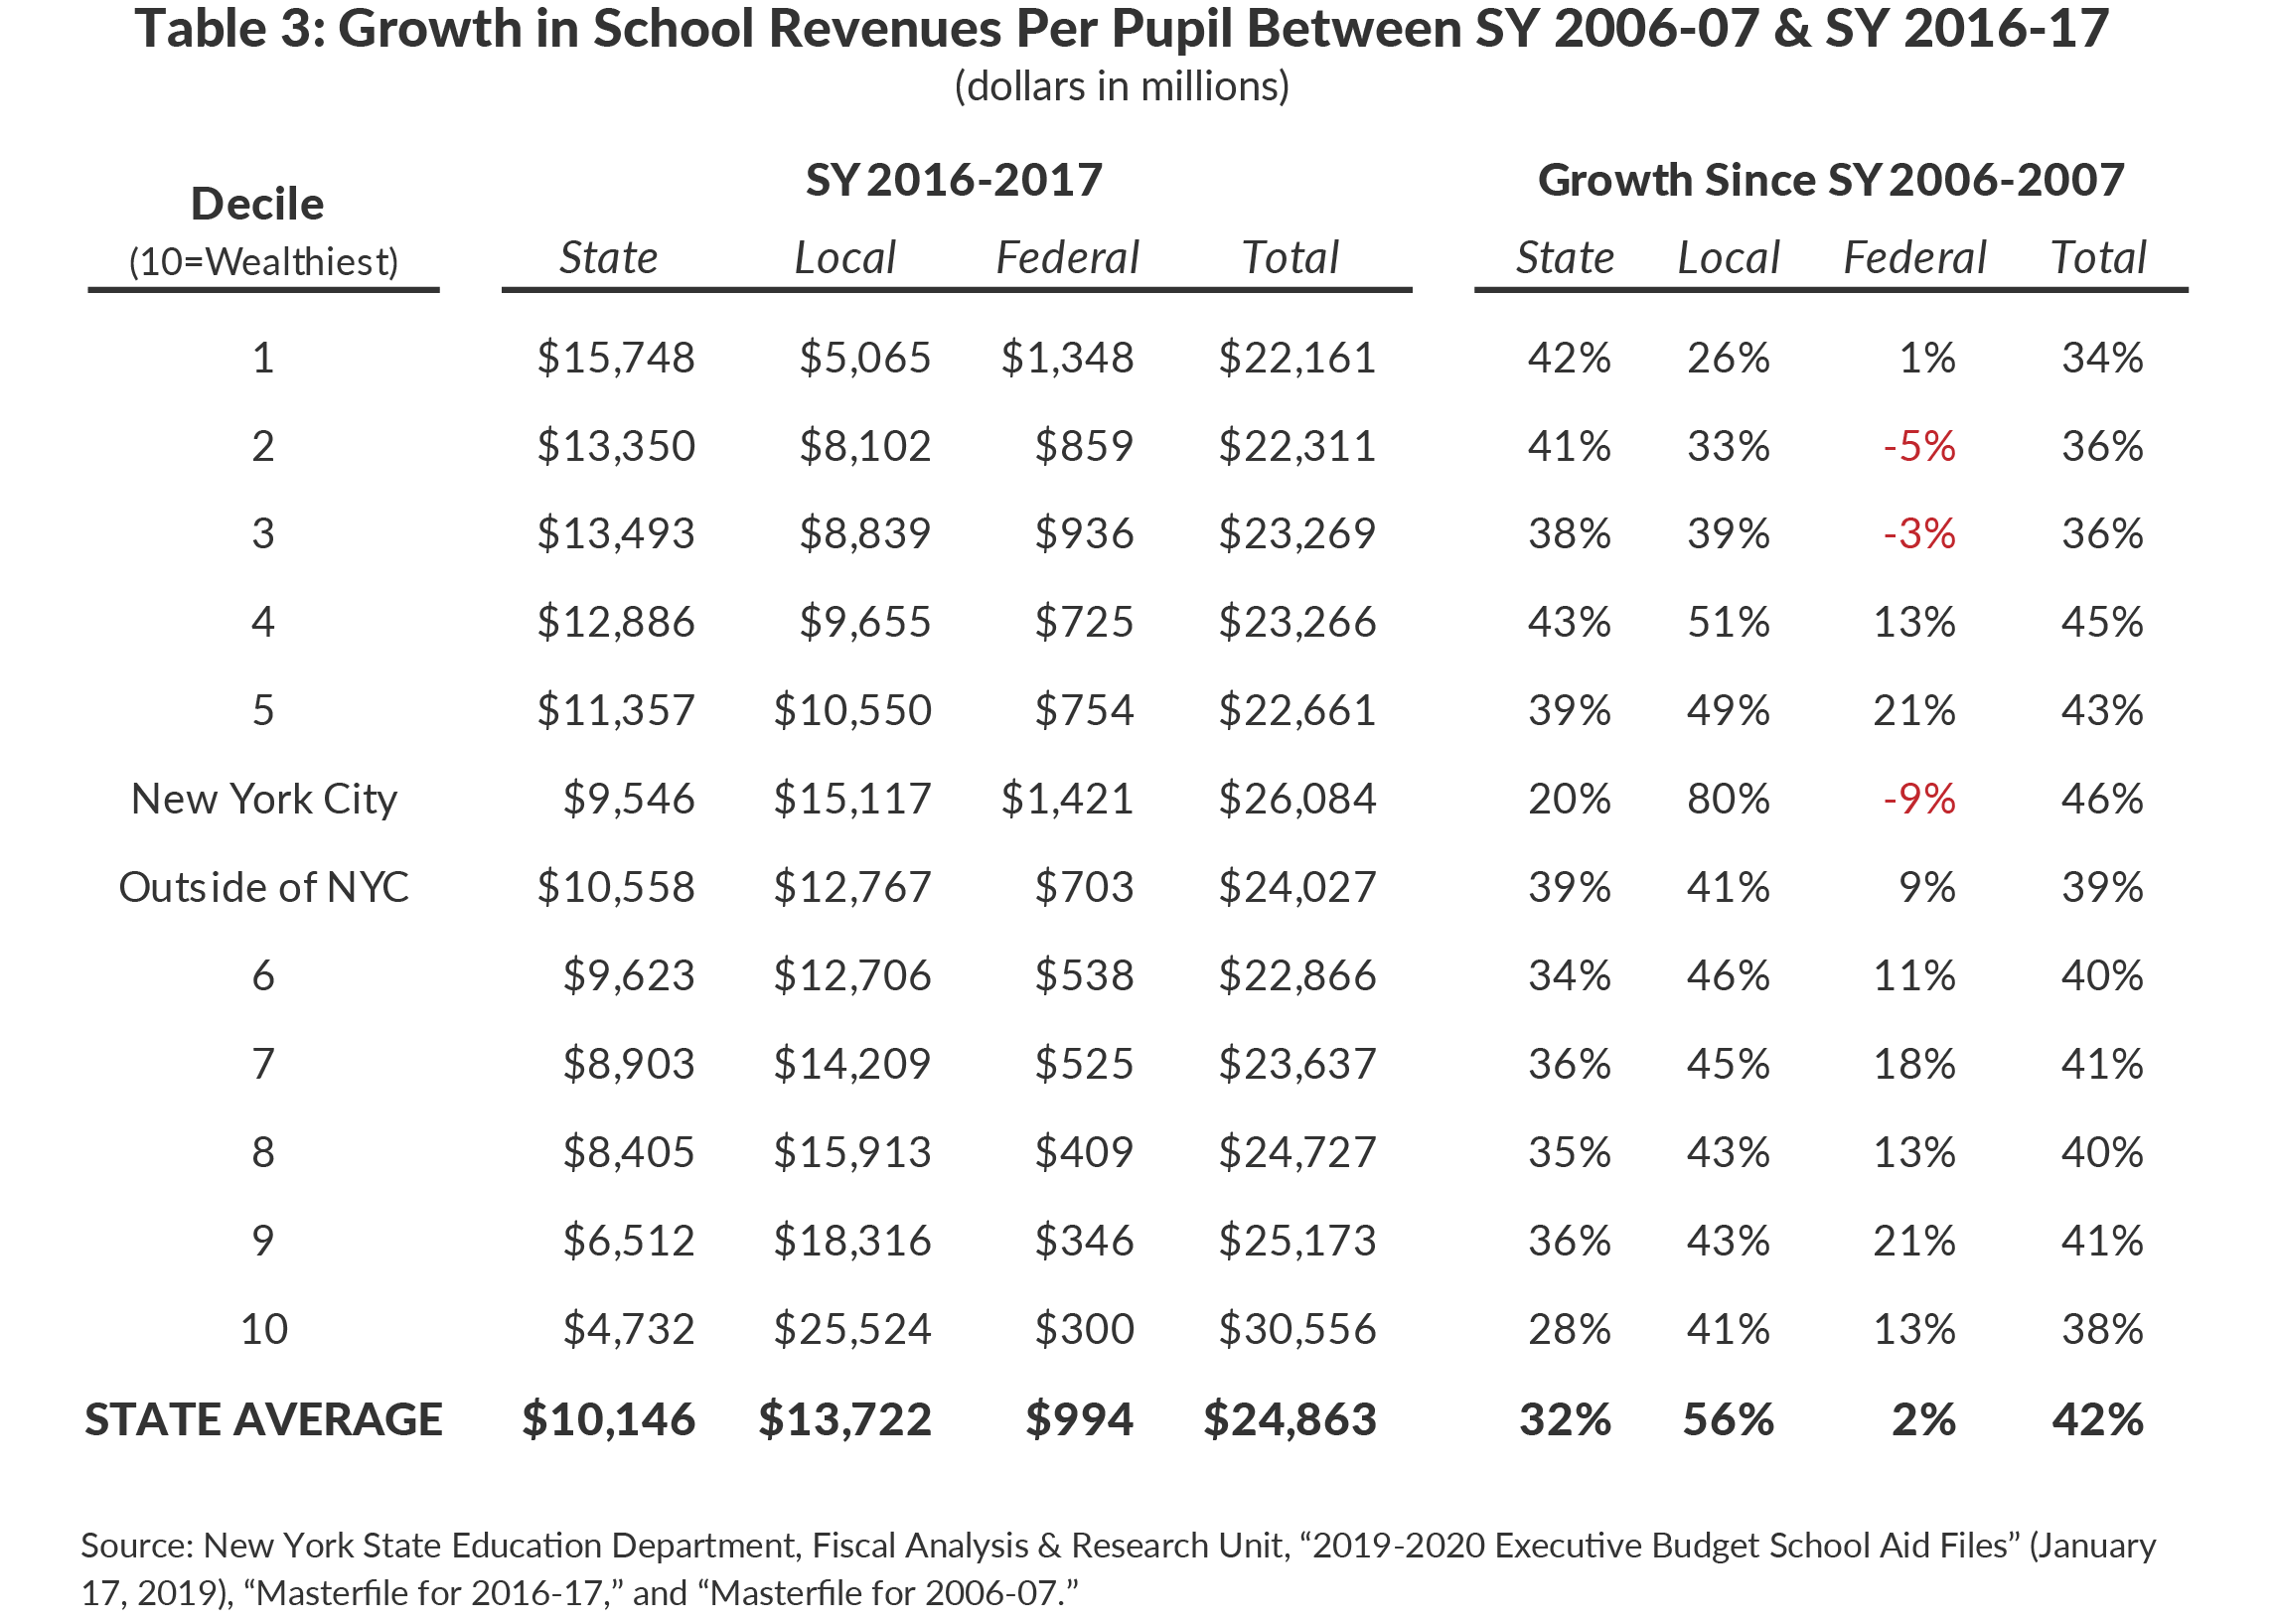 Table 3: Growth in School Revenues Per Pupil Between SY 2006-2007 & SY 2016-2017